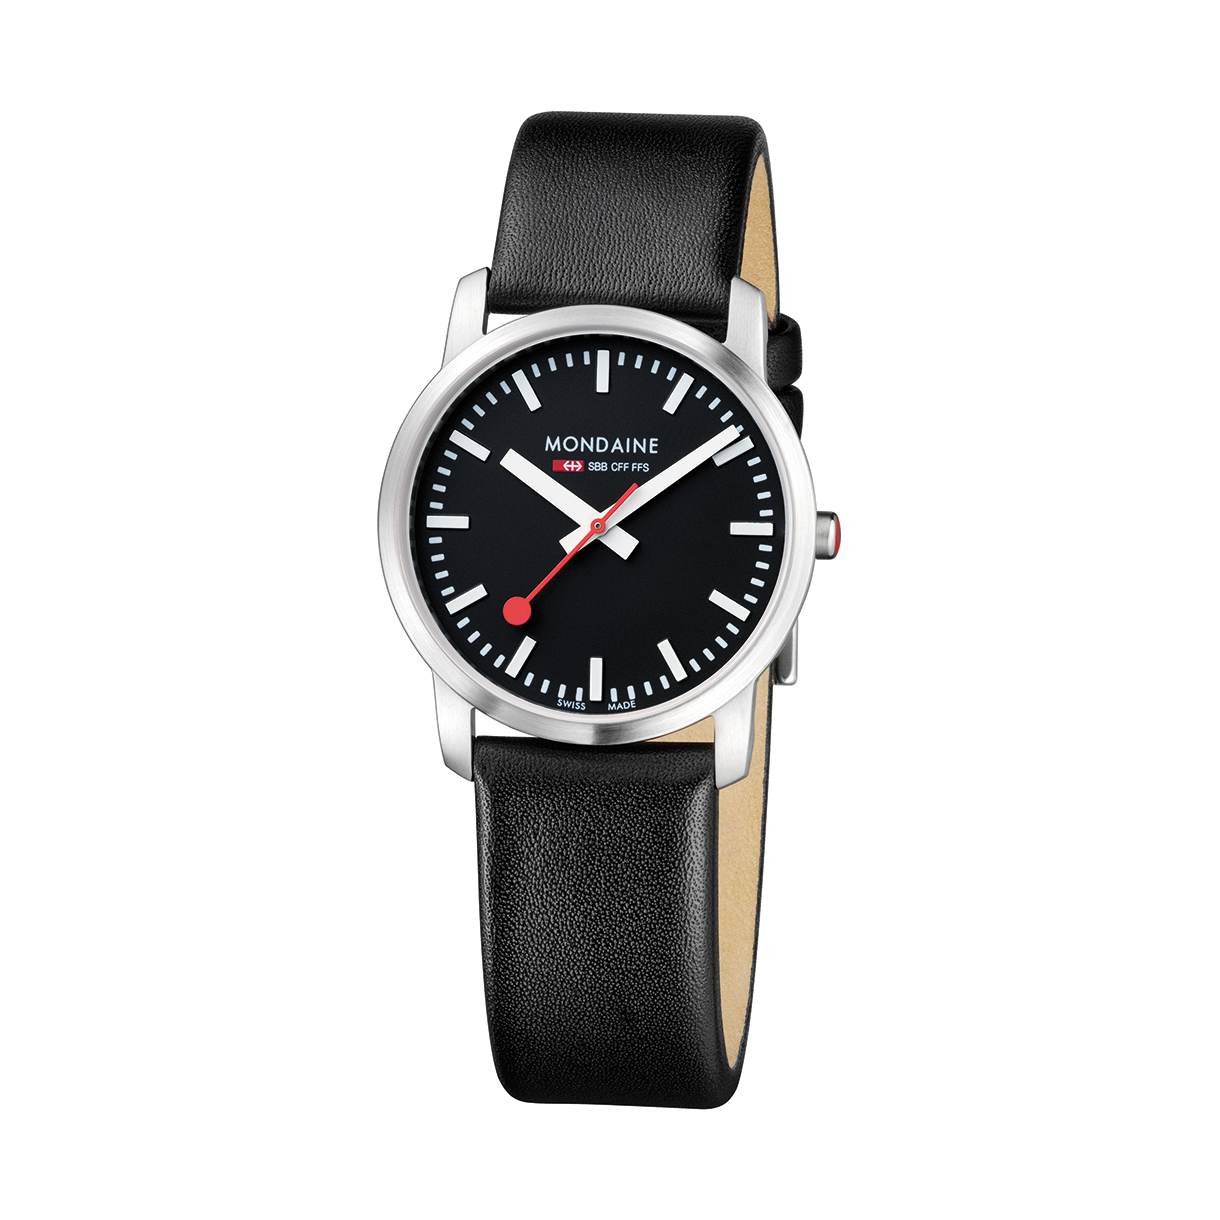 Mondaine Simply Elegant Mondaine Watches Amp Clocks